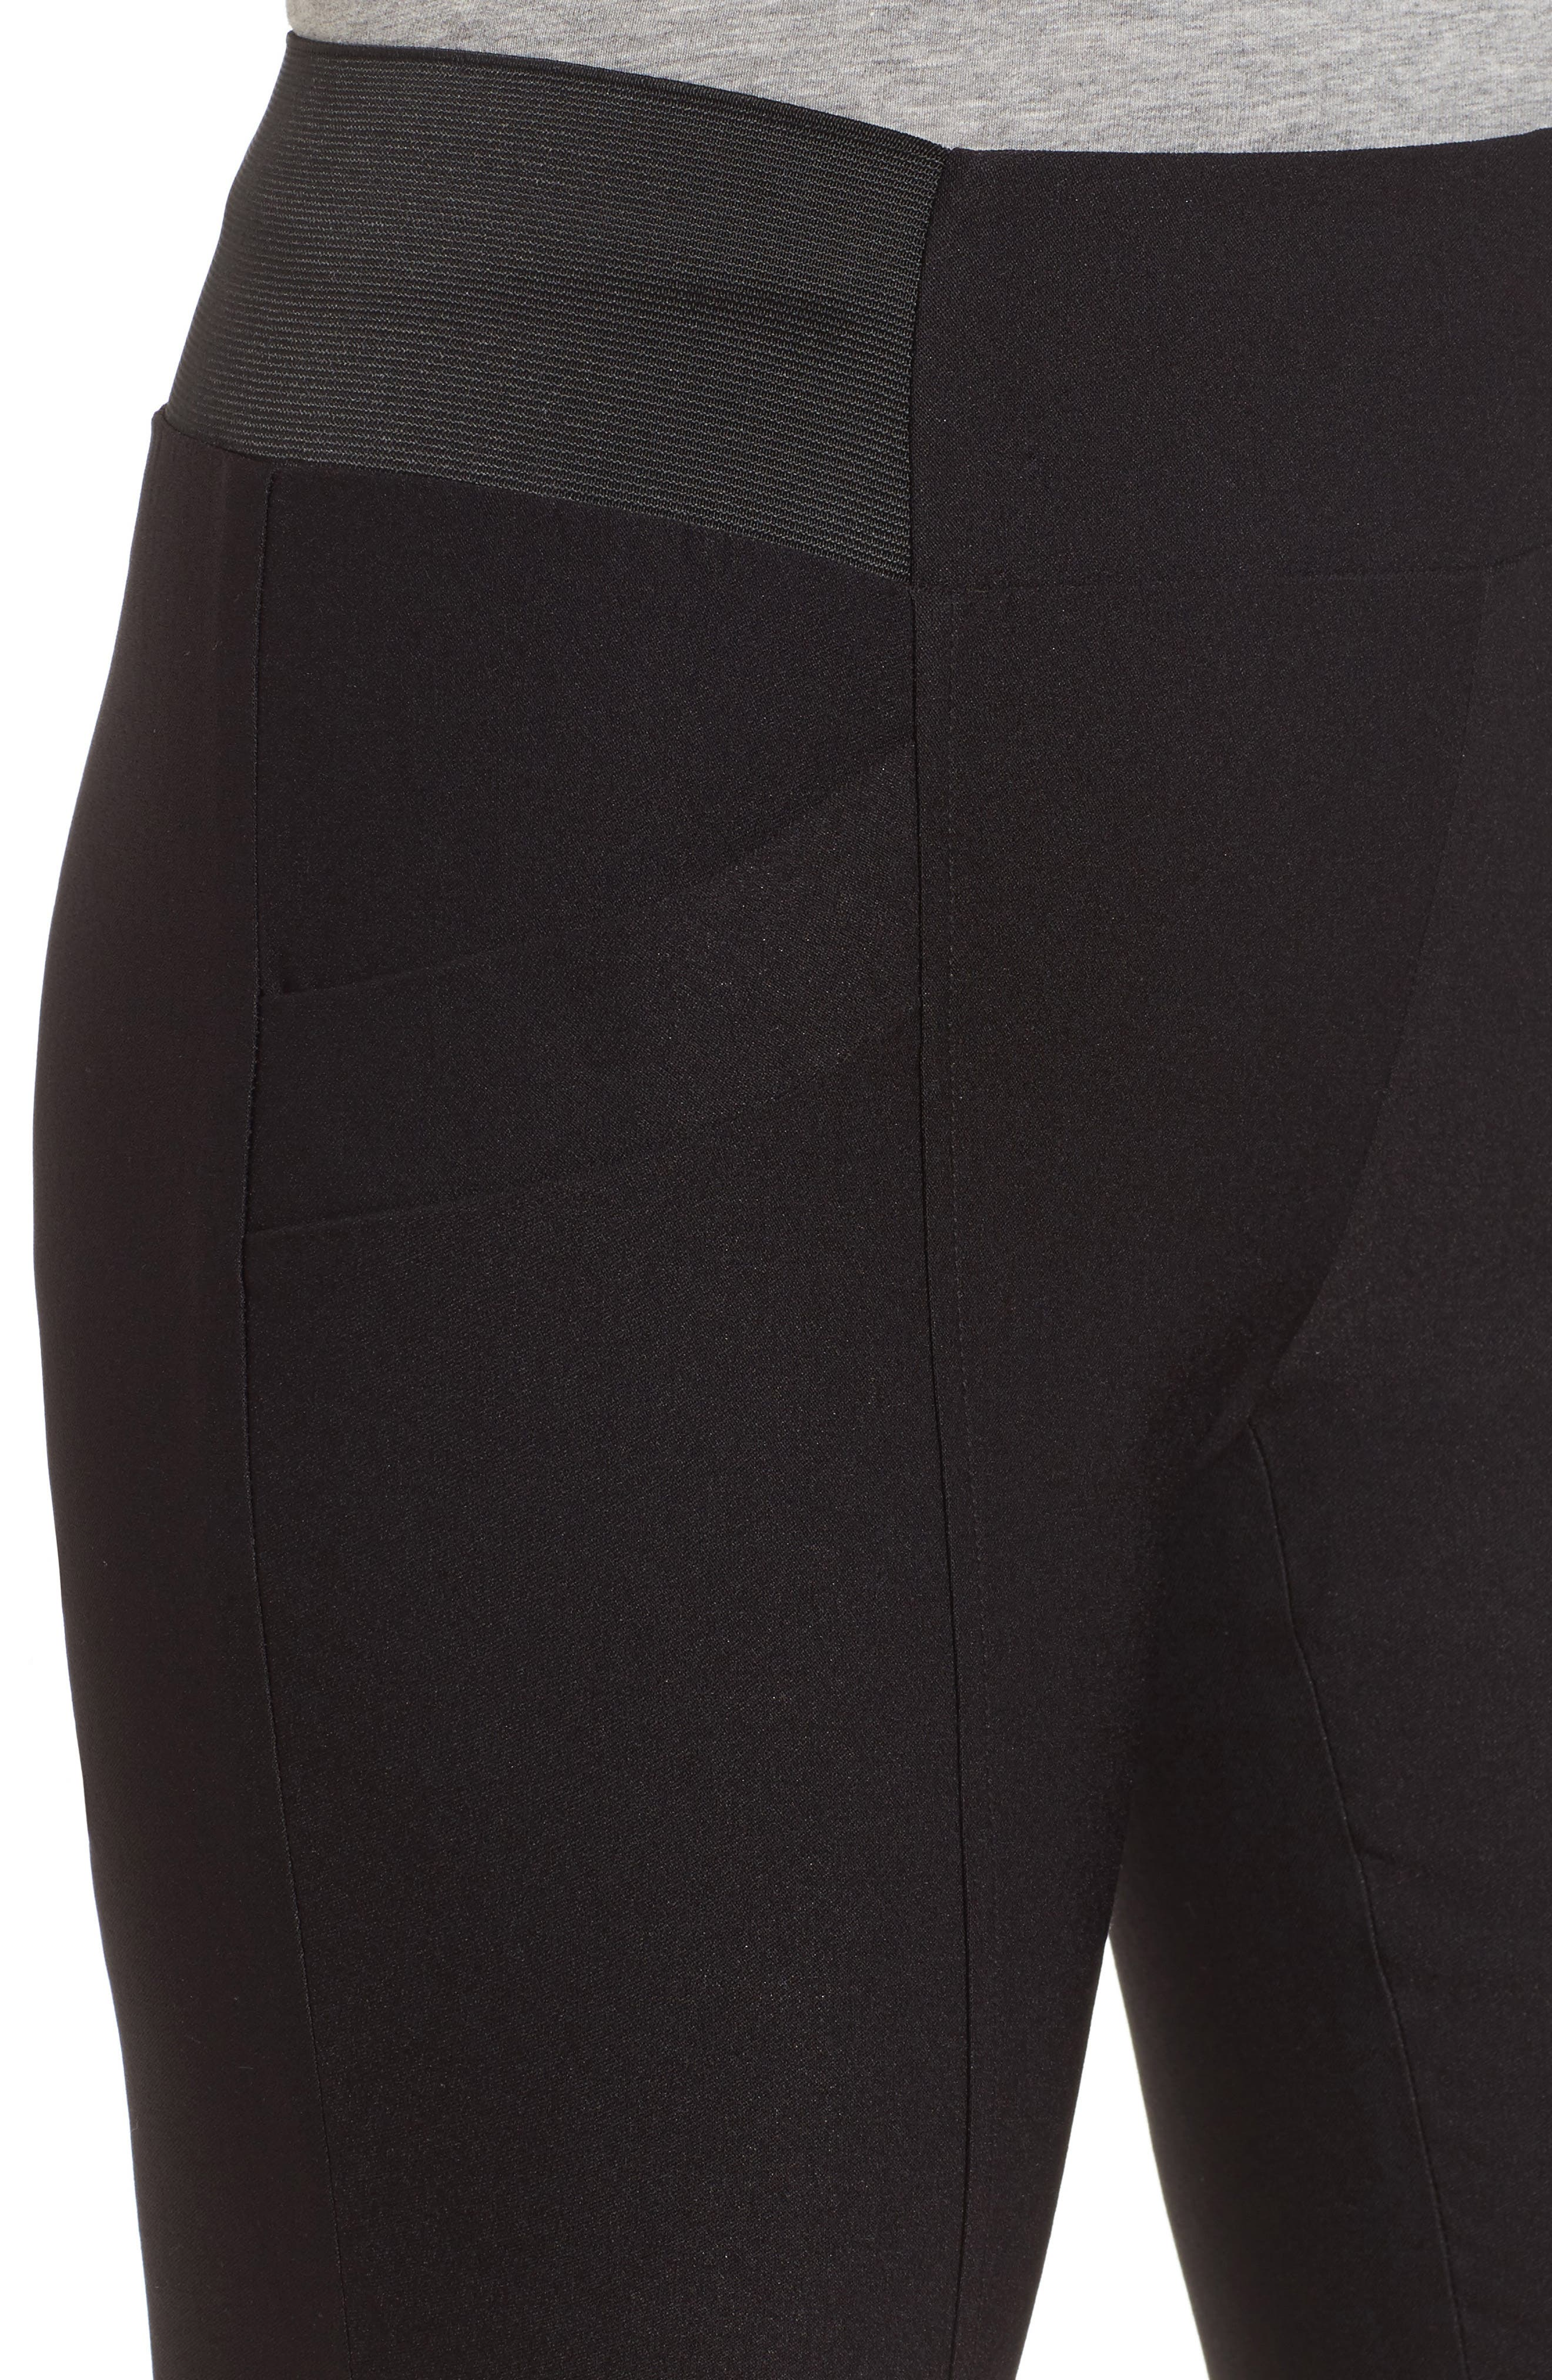 Alternate Image 4  - NIC+ZOE Zip Ankle Wonder Stretch Pants